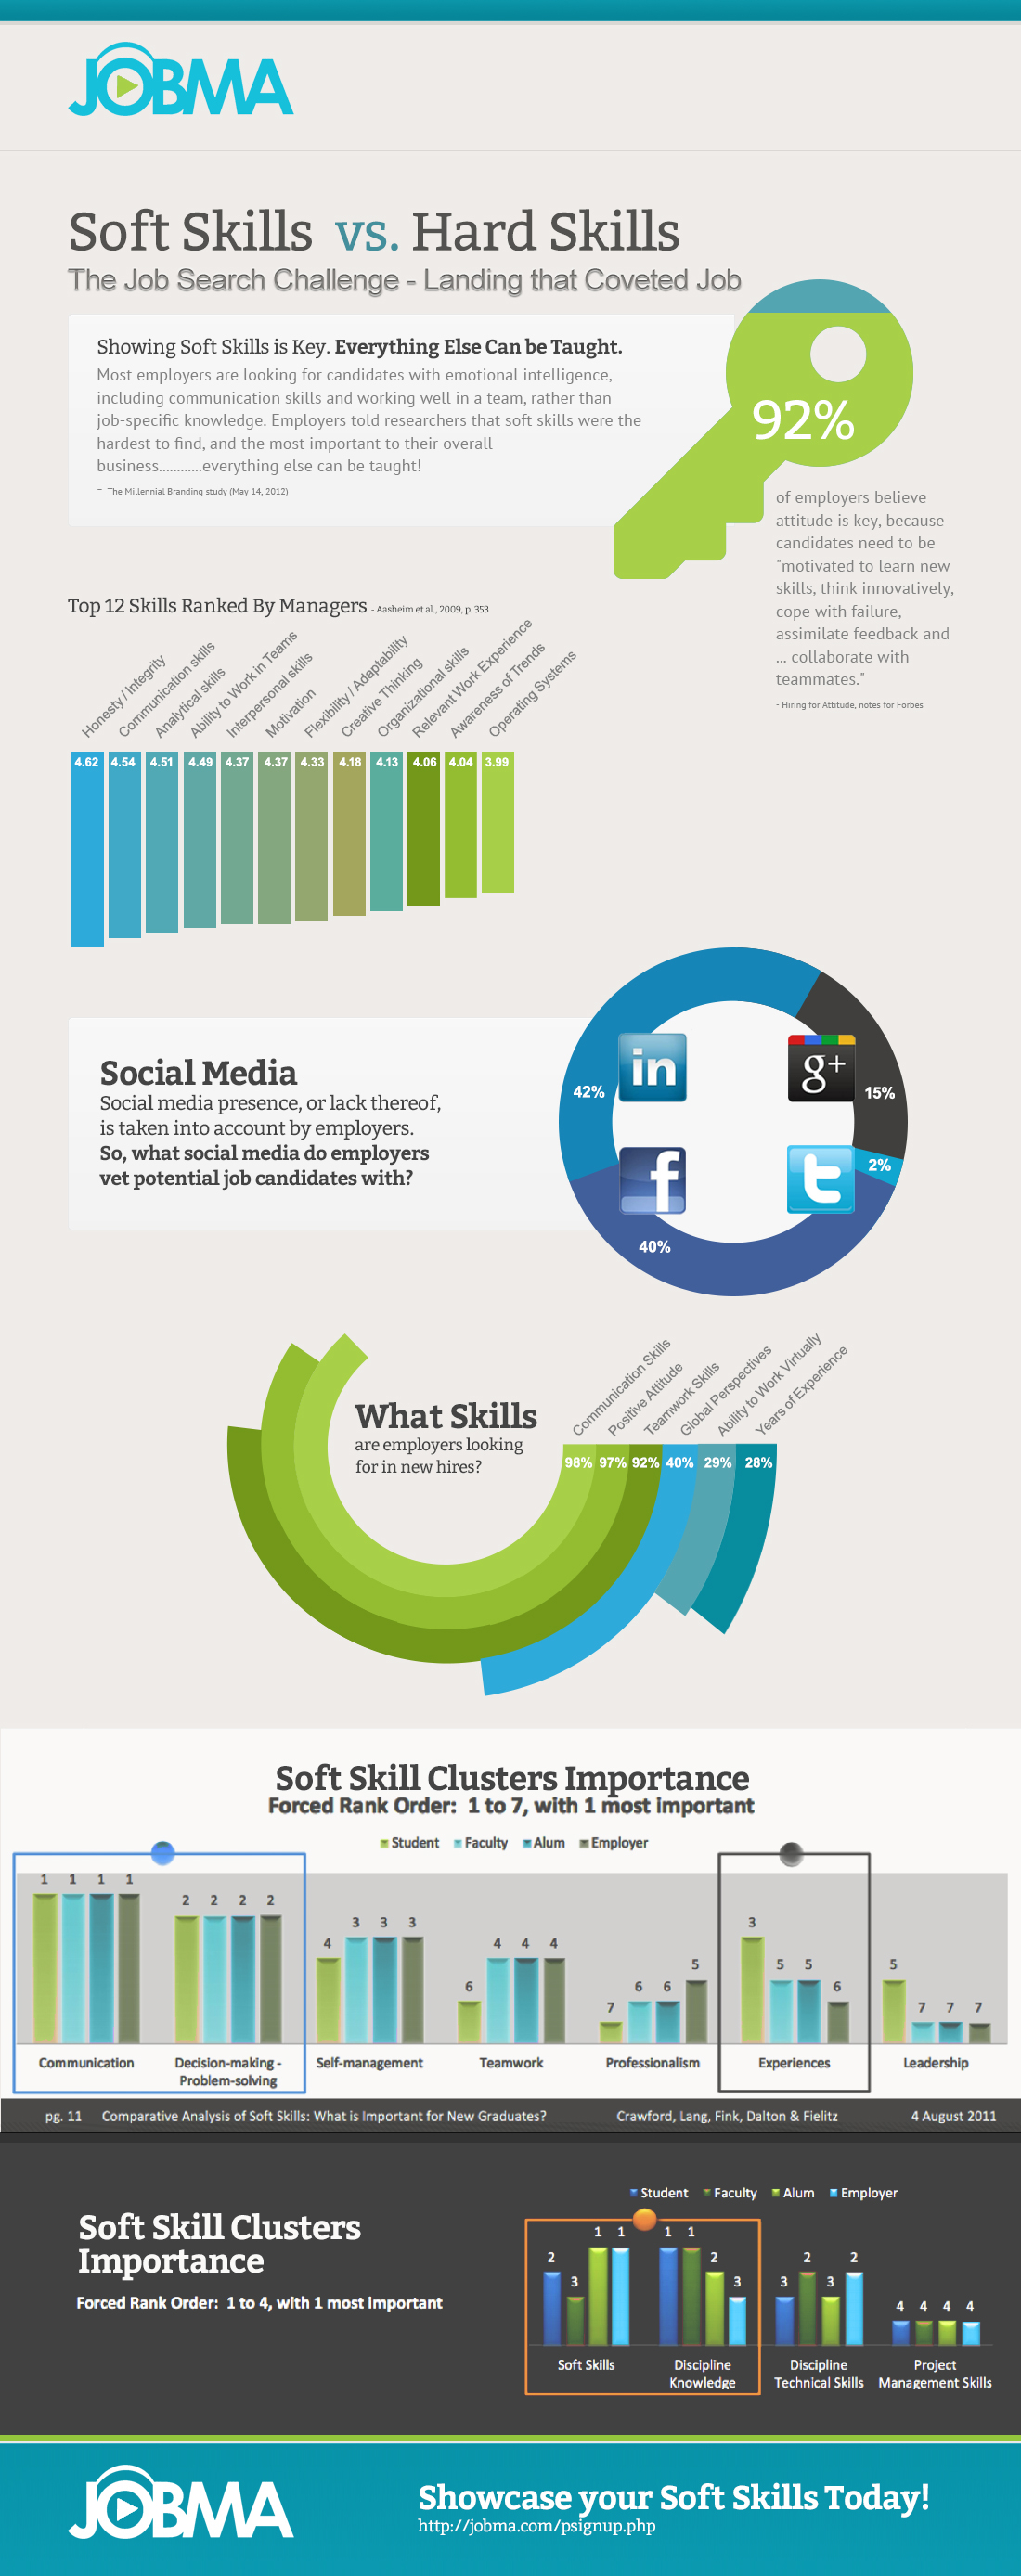 Are Soft Skills More Important Than Hard Skills